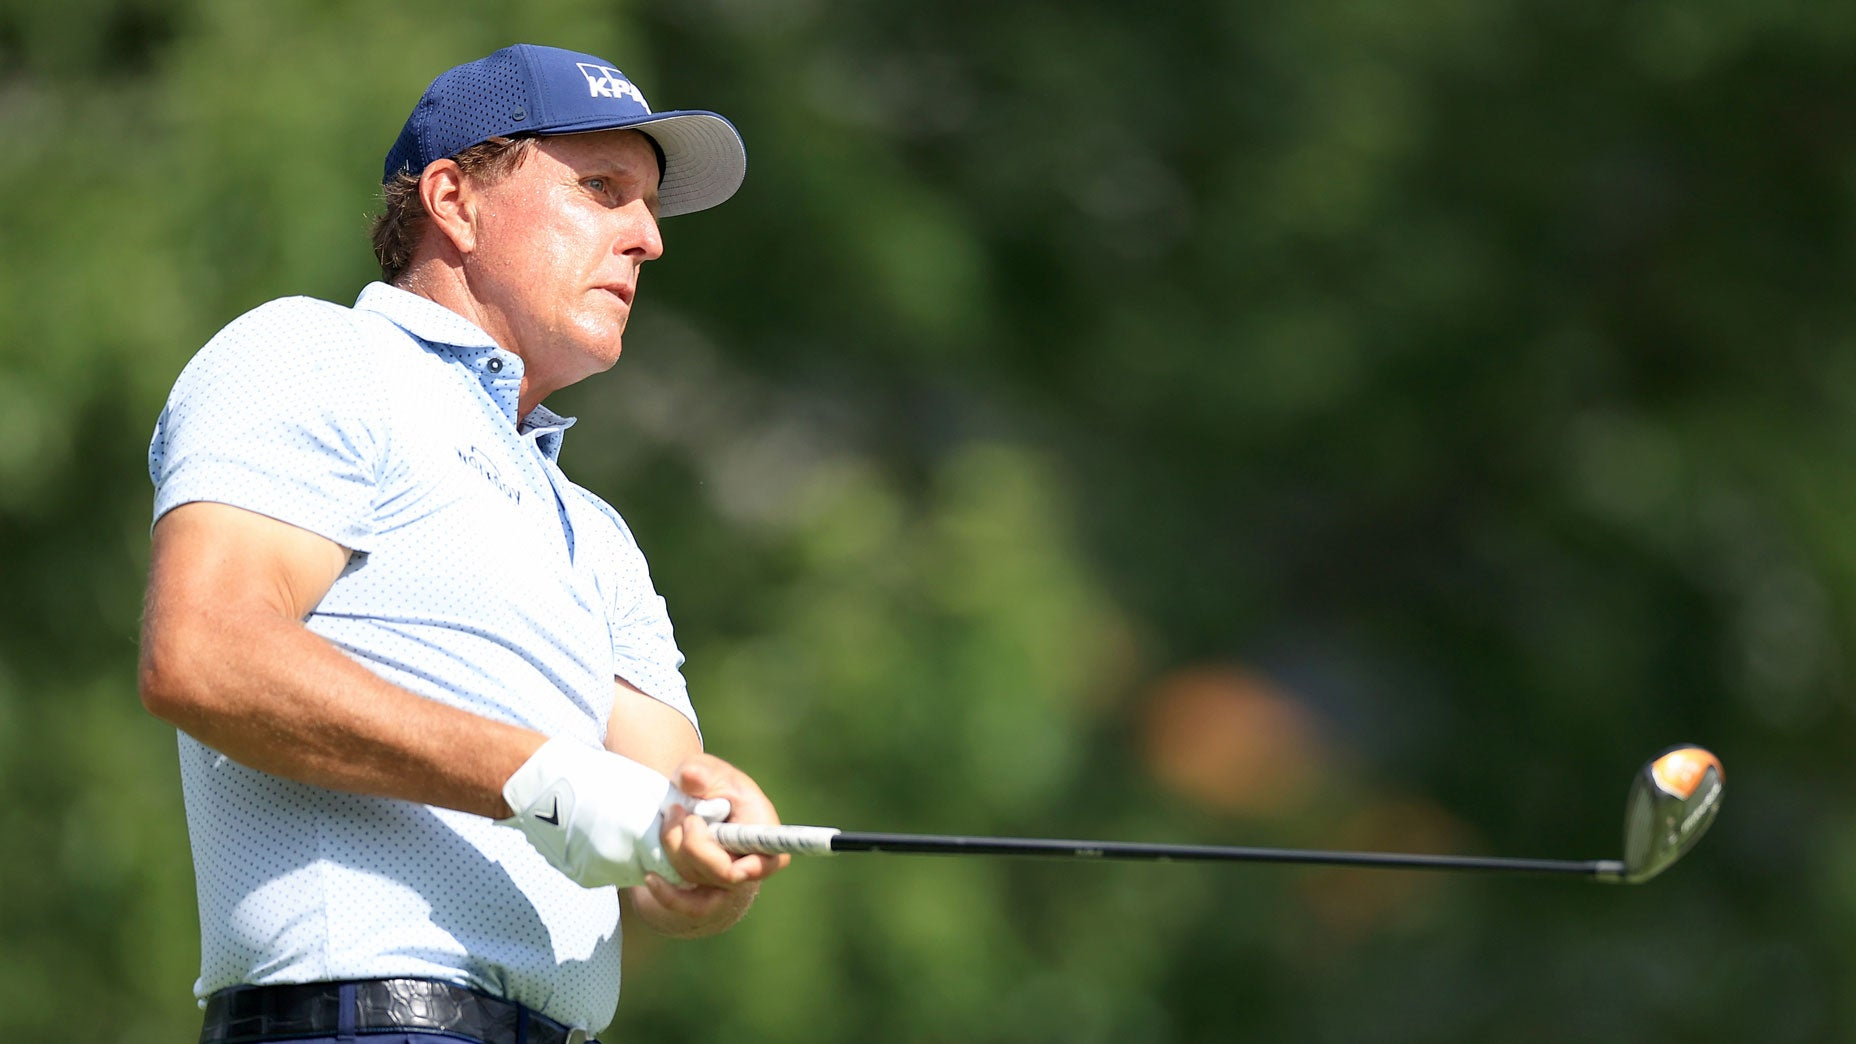 Phil Mickelson plugs his coffee as only Phil Mickelson can